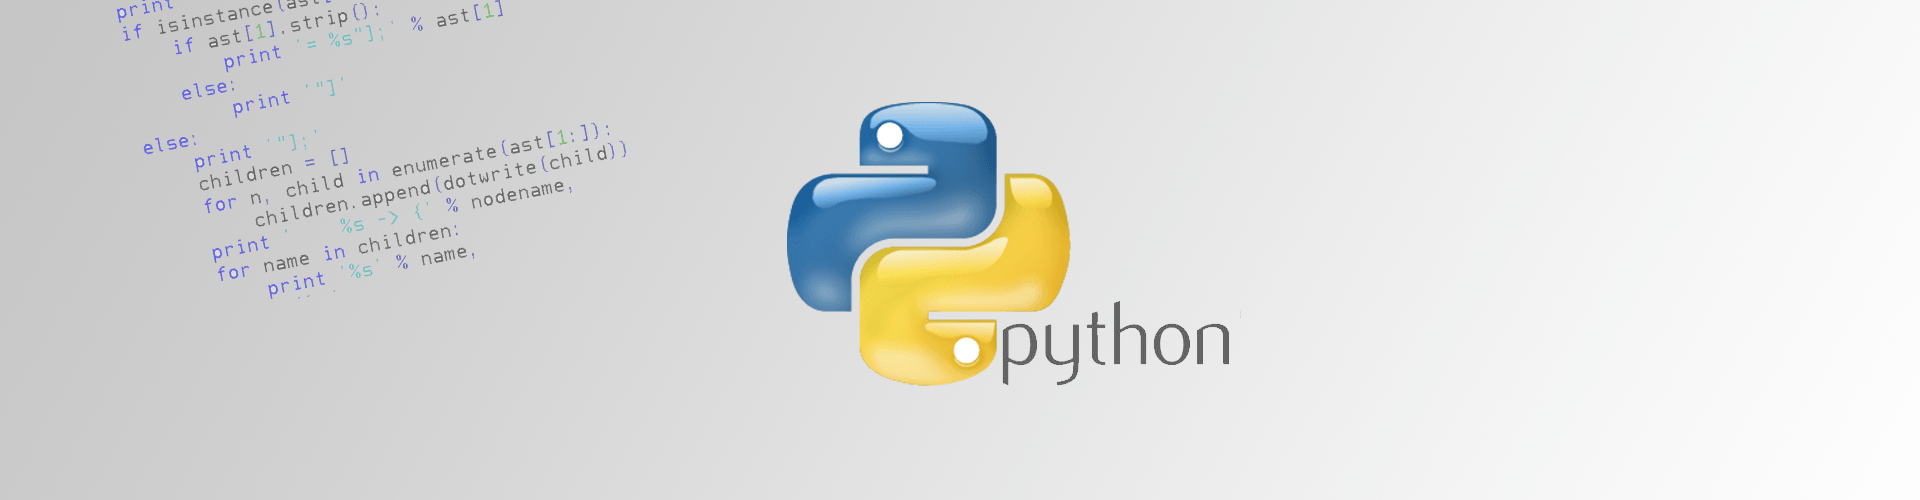 Get started with Python   Notebook for Beginner's level